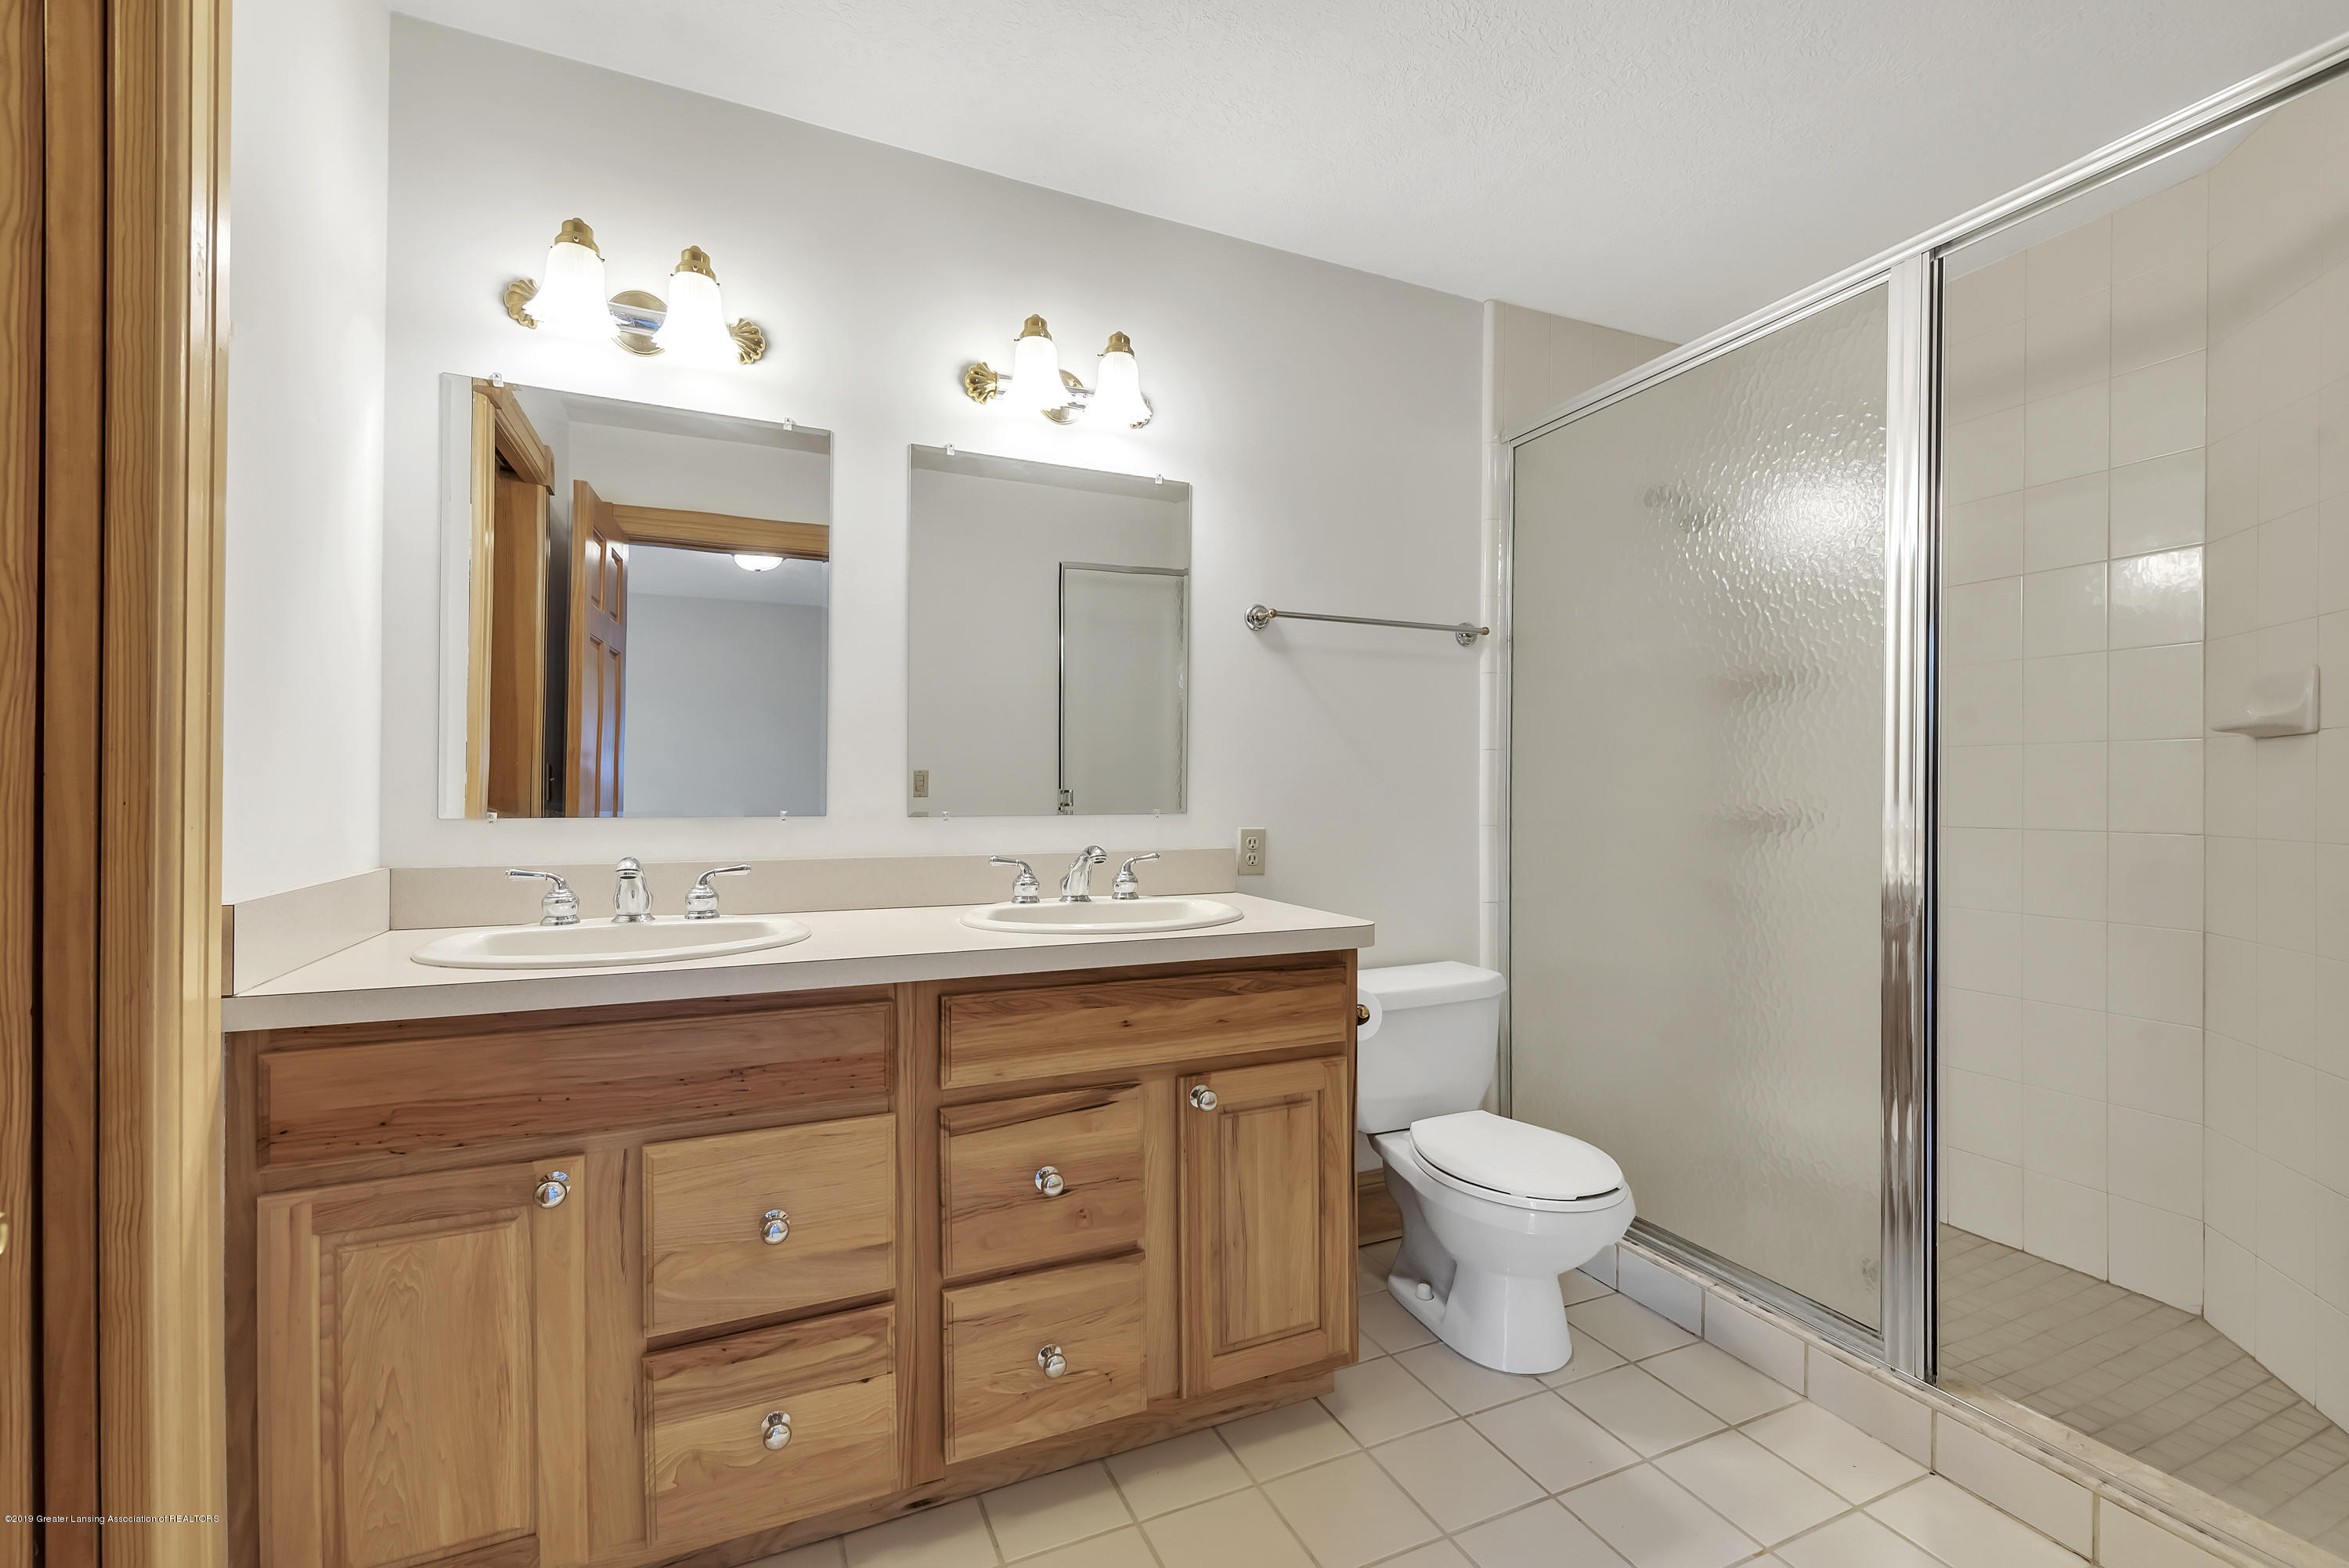 10865 Barnes Rd - 10865-Barnes-Rd-WindowStill-Real-Estate- - 27